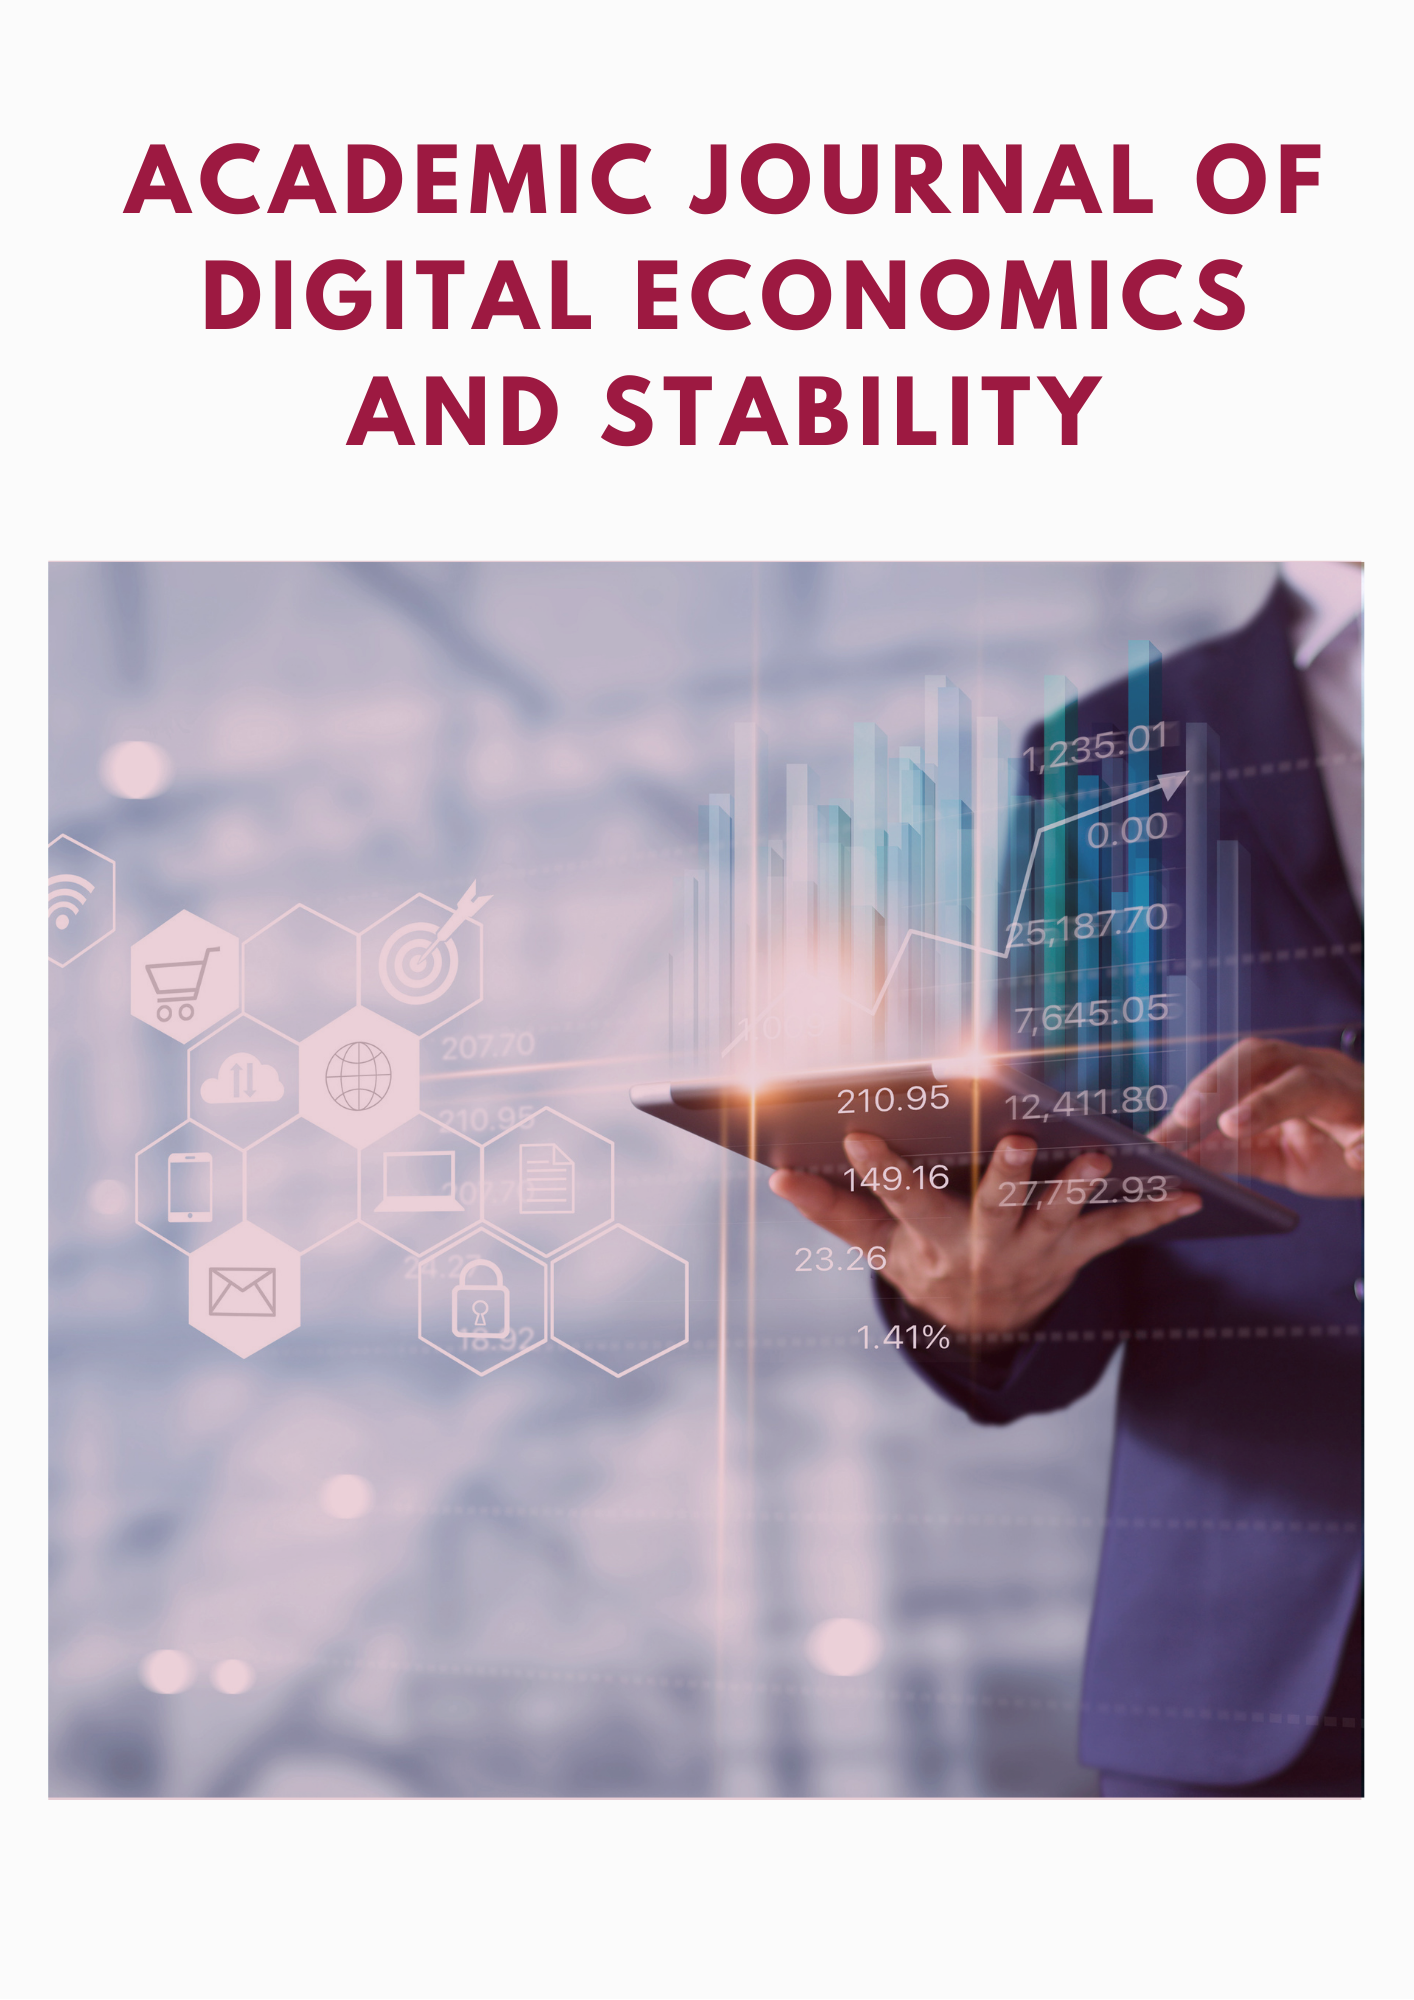 Academic Journal of Digital Economics and Stability